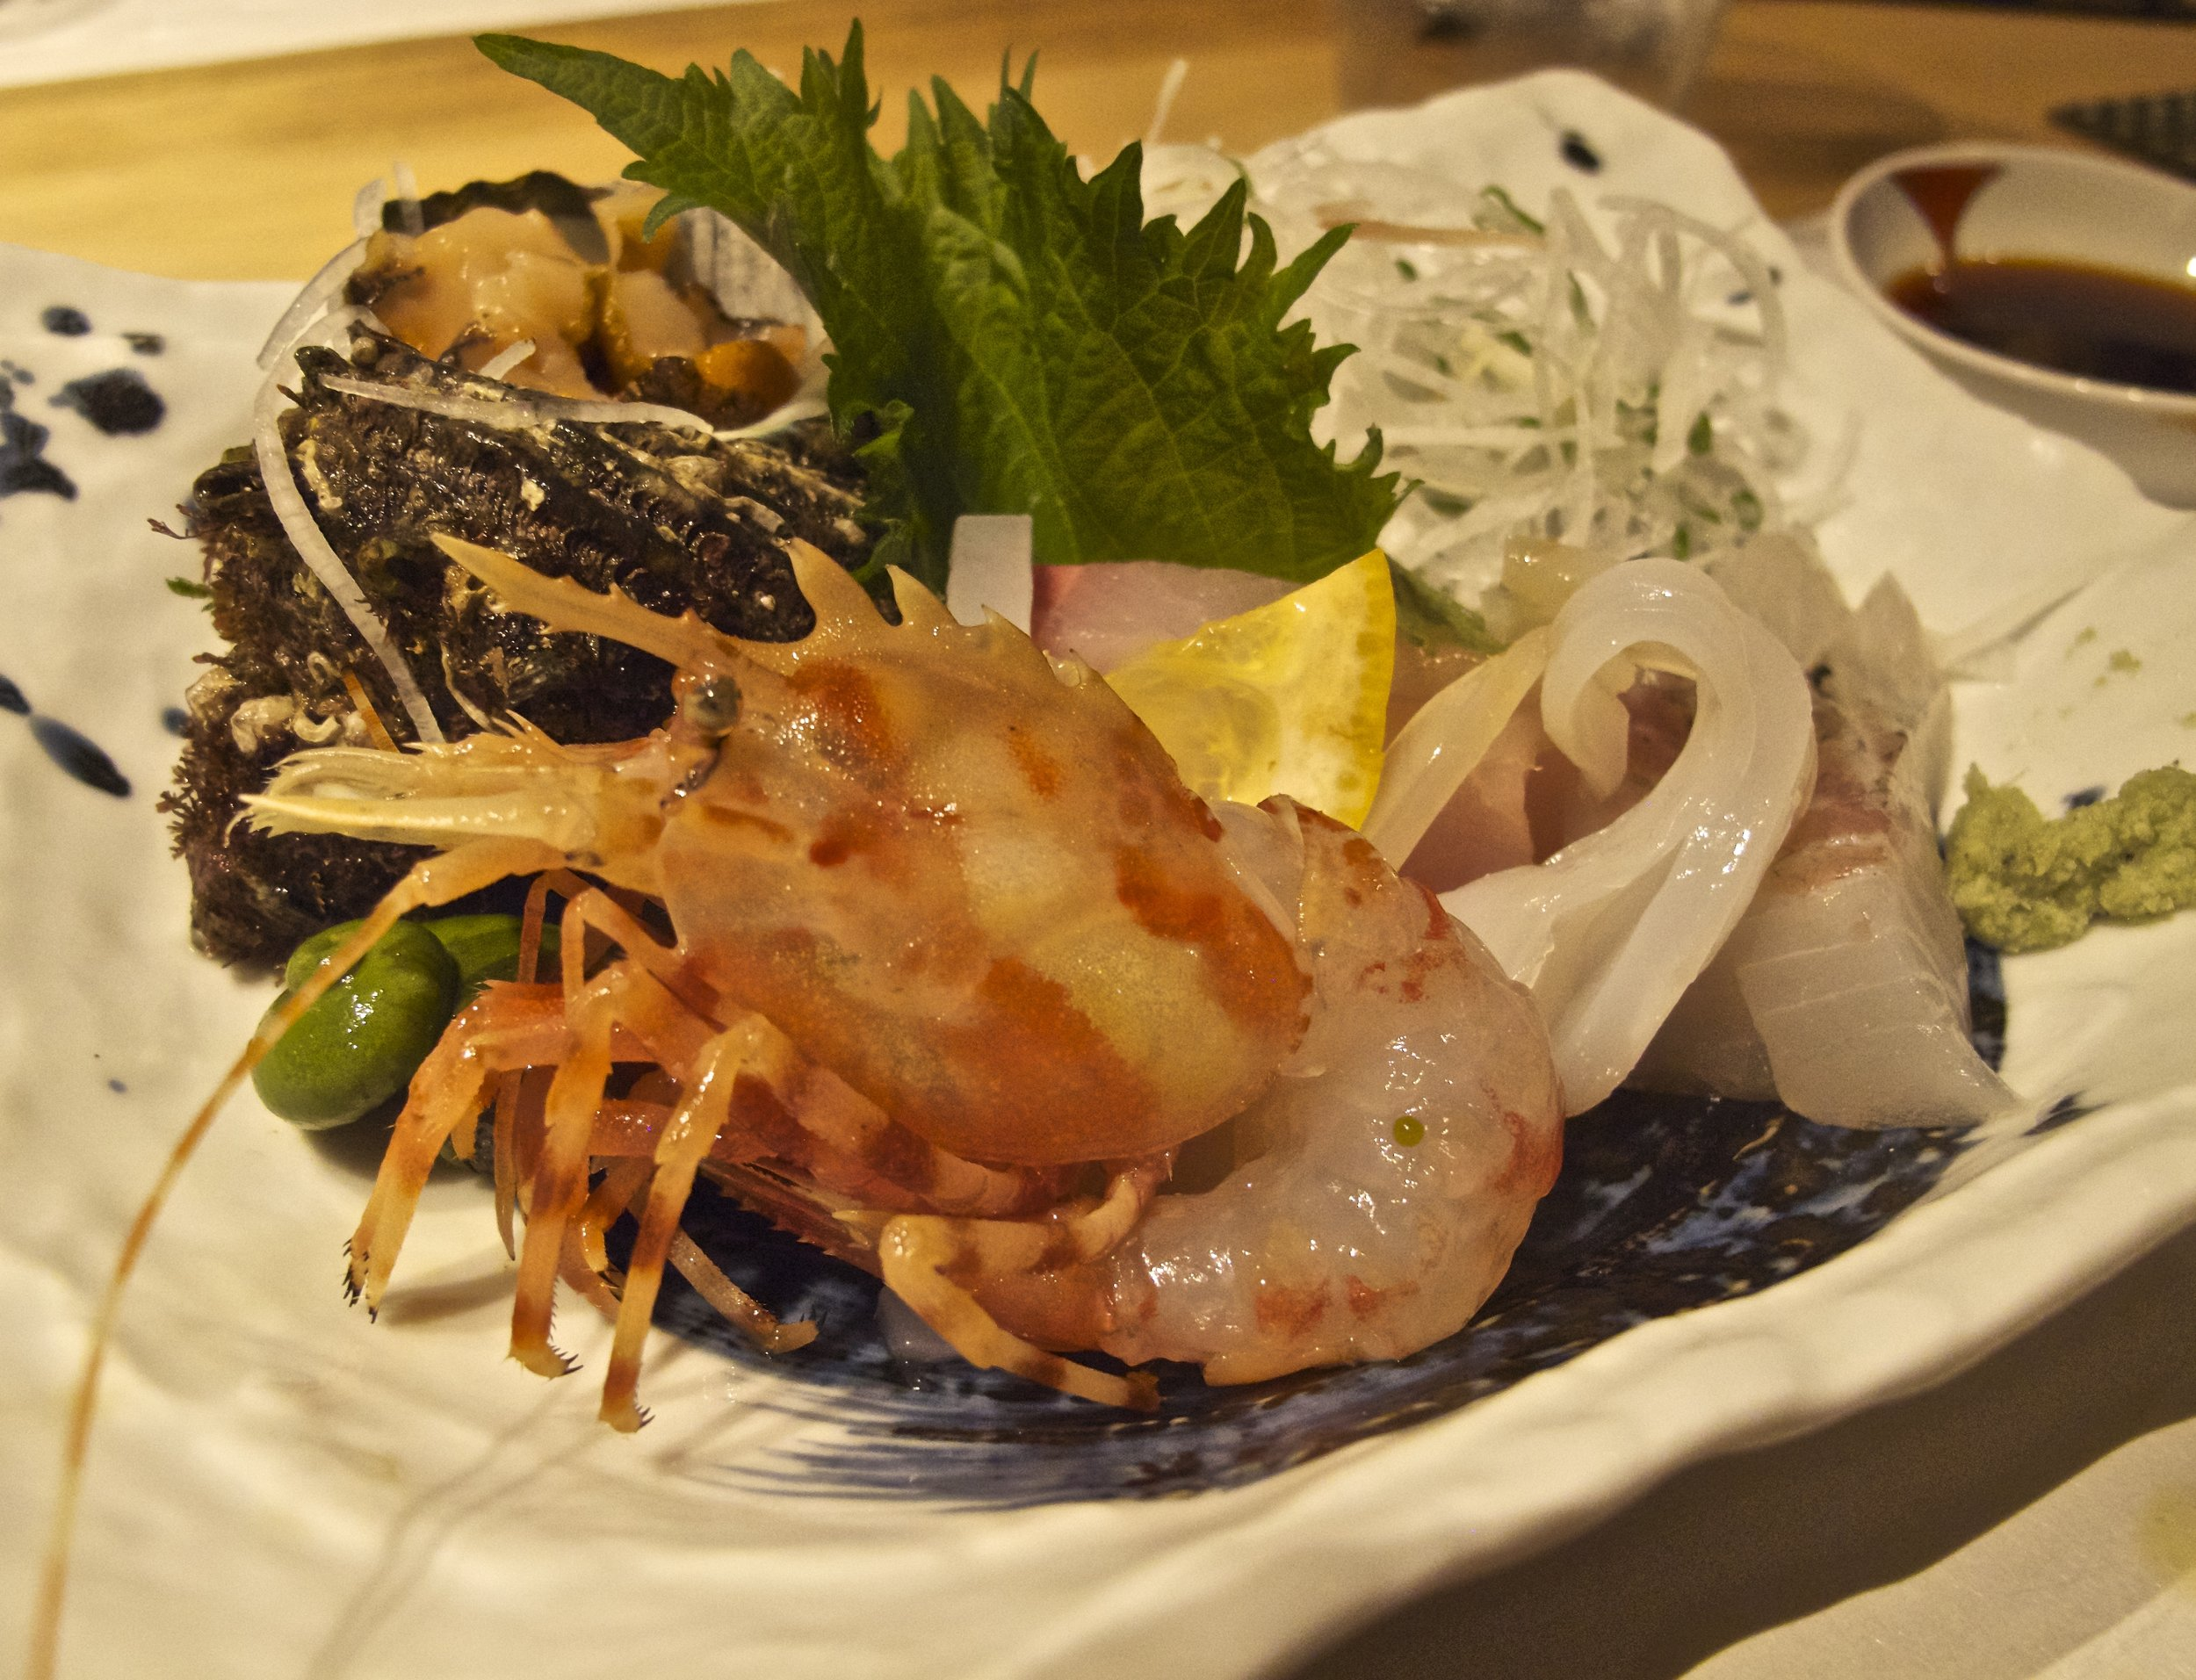 A seasonal assortment of sashimi, sliced raw fish served with your choice of soy sauce and wasabi,  sudachi  citrus juice and salt, or  yuzu kosho  as condiments. The spiked-head shrimp is a local specialty known as  aku ebi , or devil shrimp.